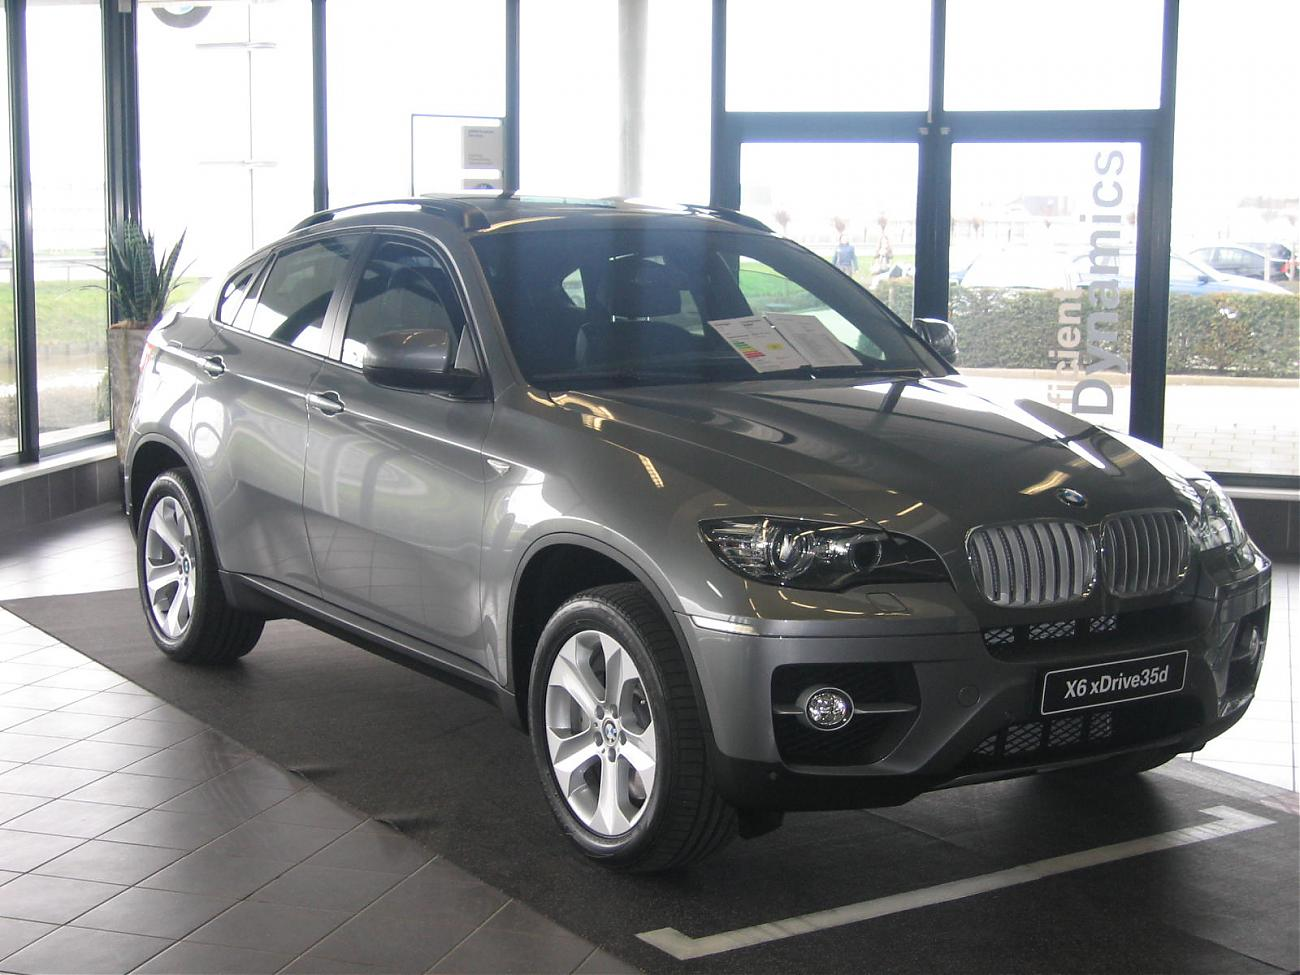 bmw x6 35d spacegrau in showroom. Black Bedroom Furniture Sets. Home Design Ideas